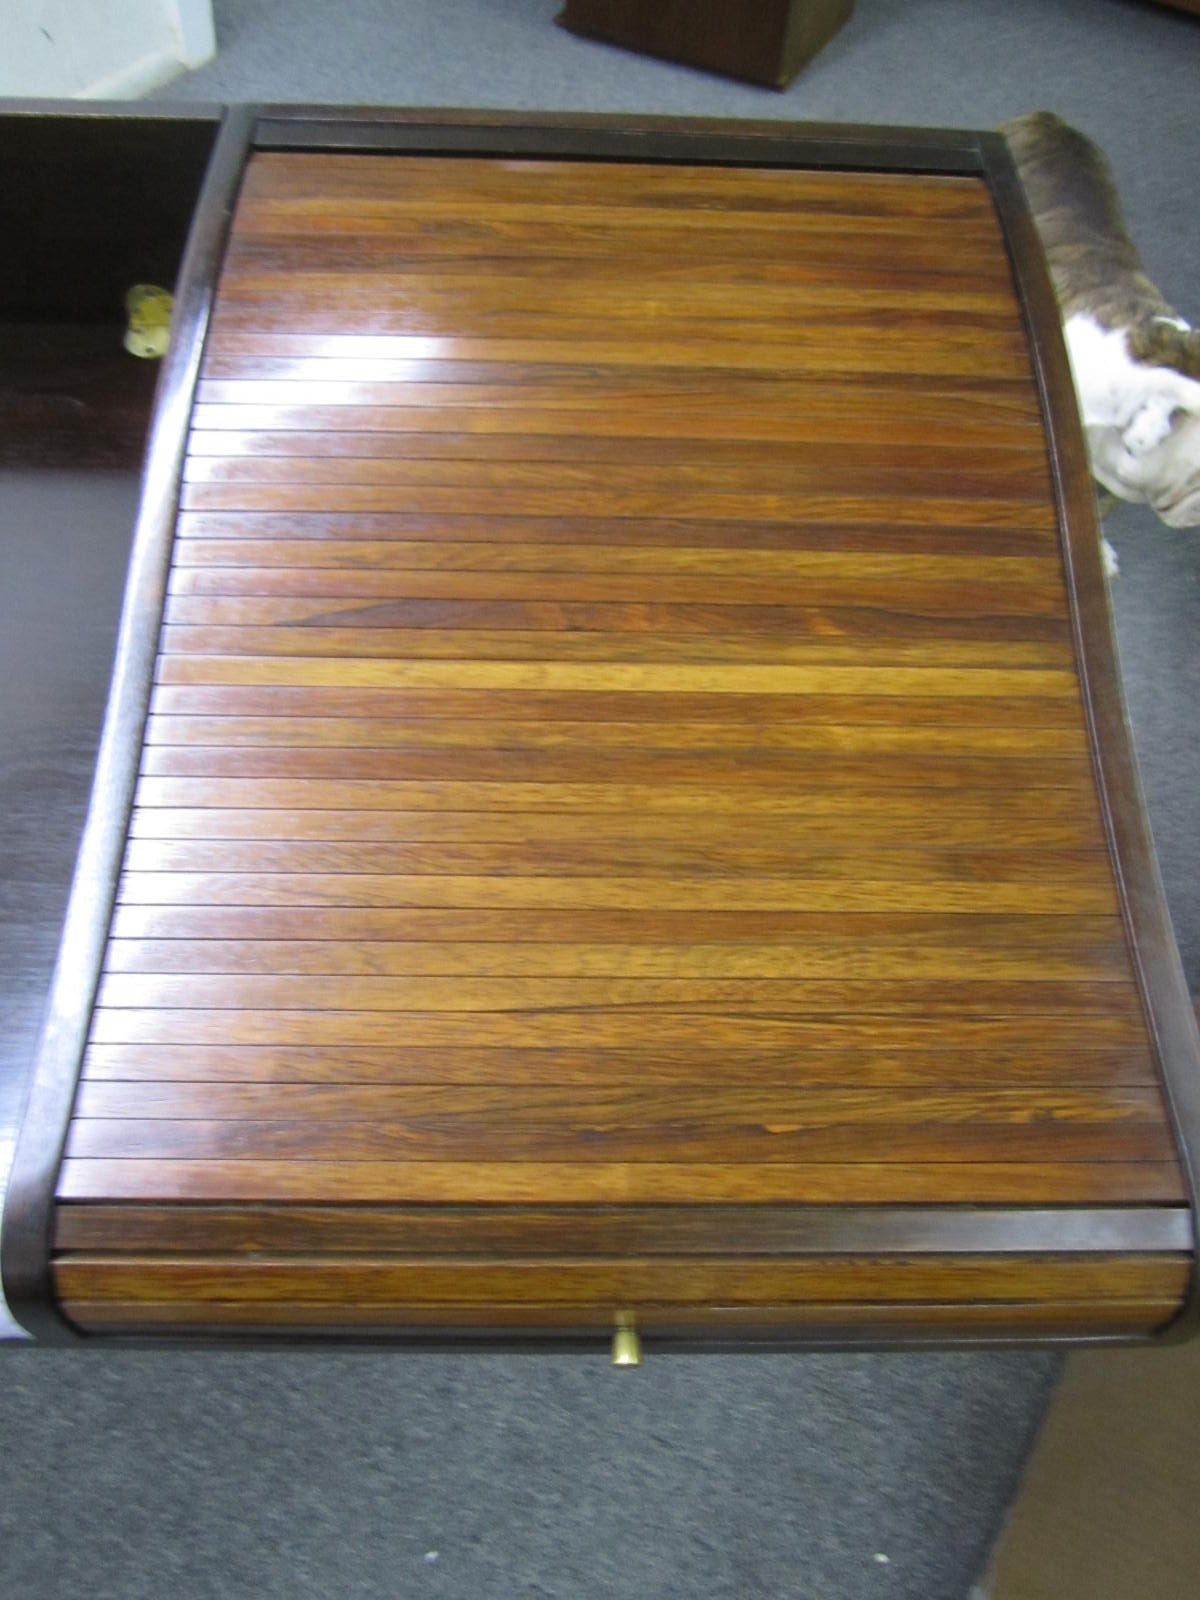 Mid-20th Century Excellent Rosewood Roll Top Desk by Edward Wormley for Dunbar Mid-Century Modern For Sale